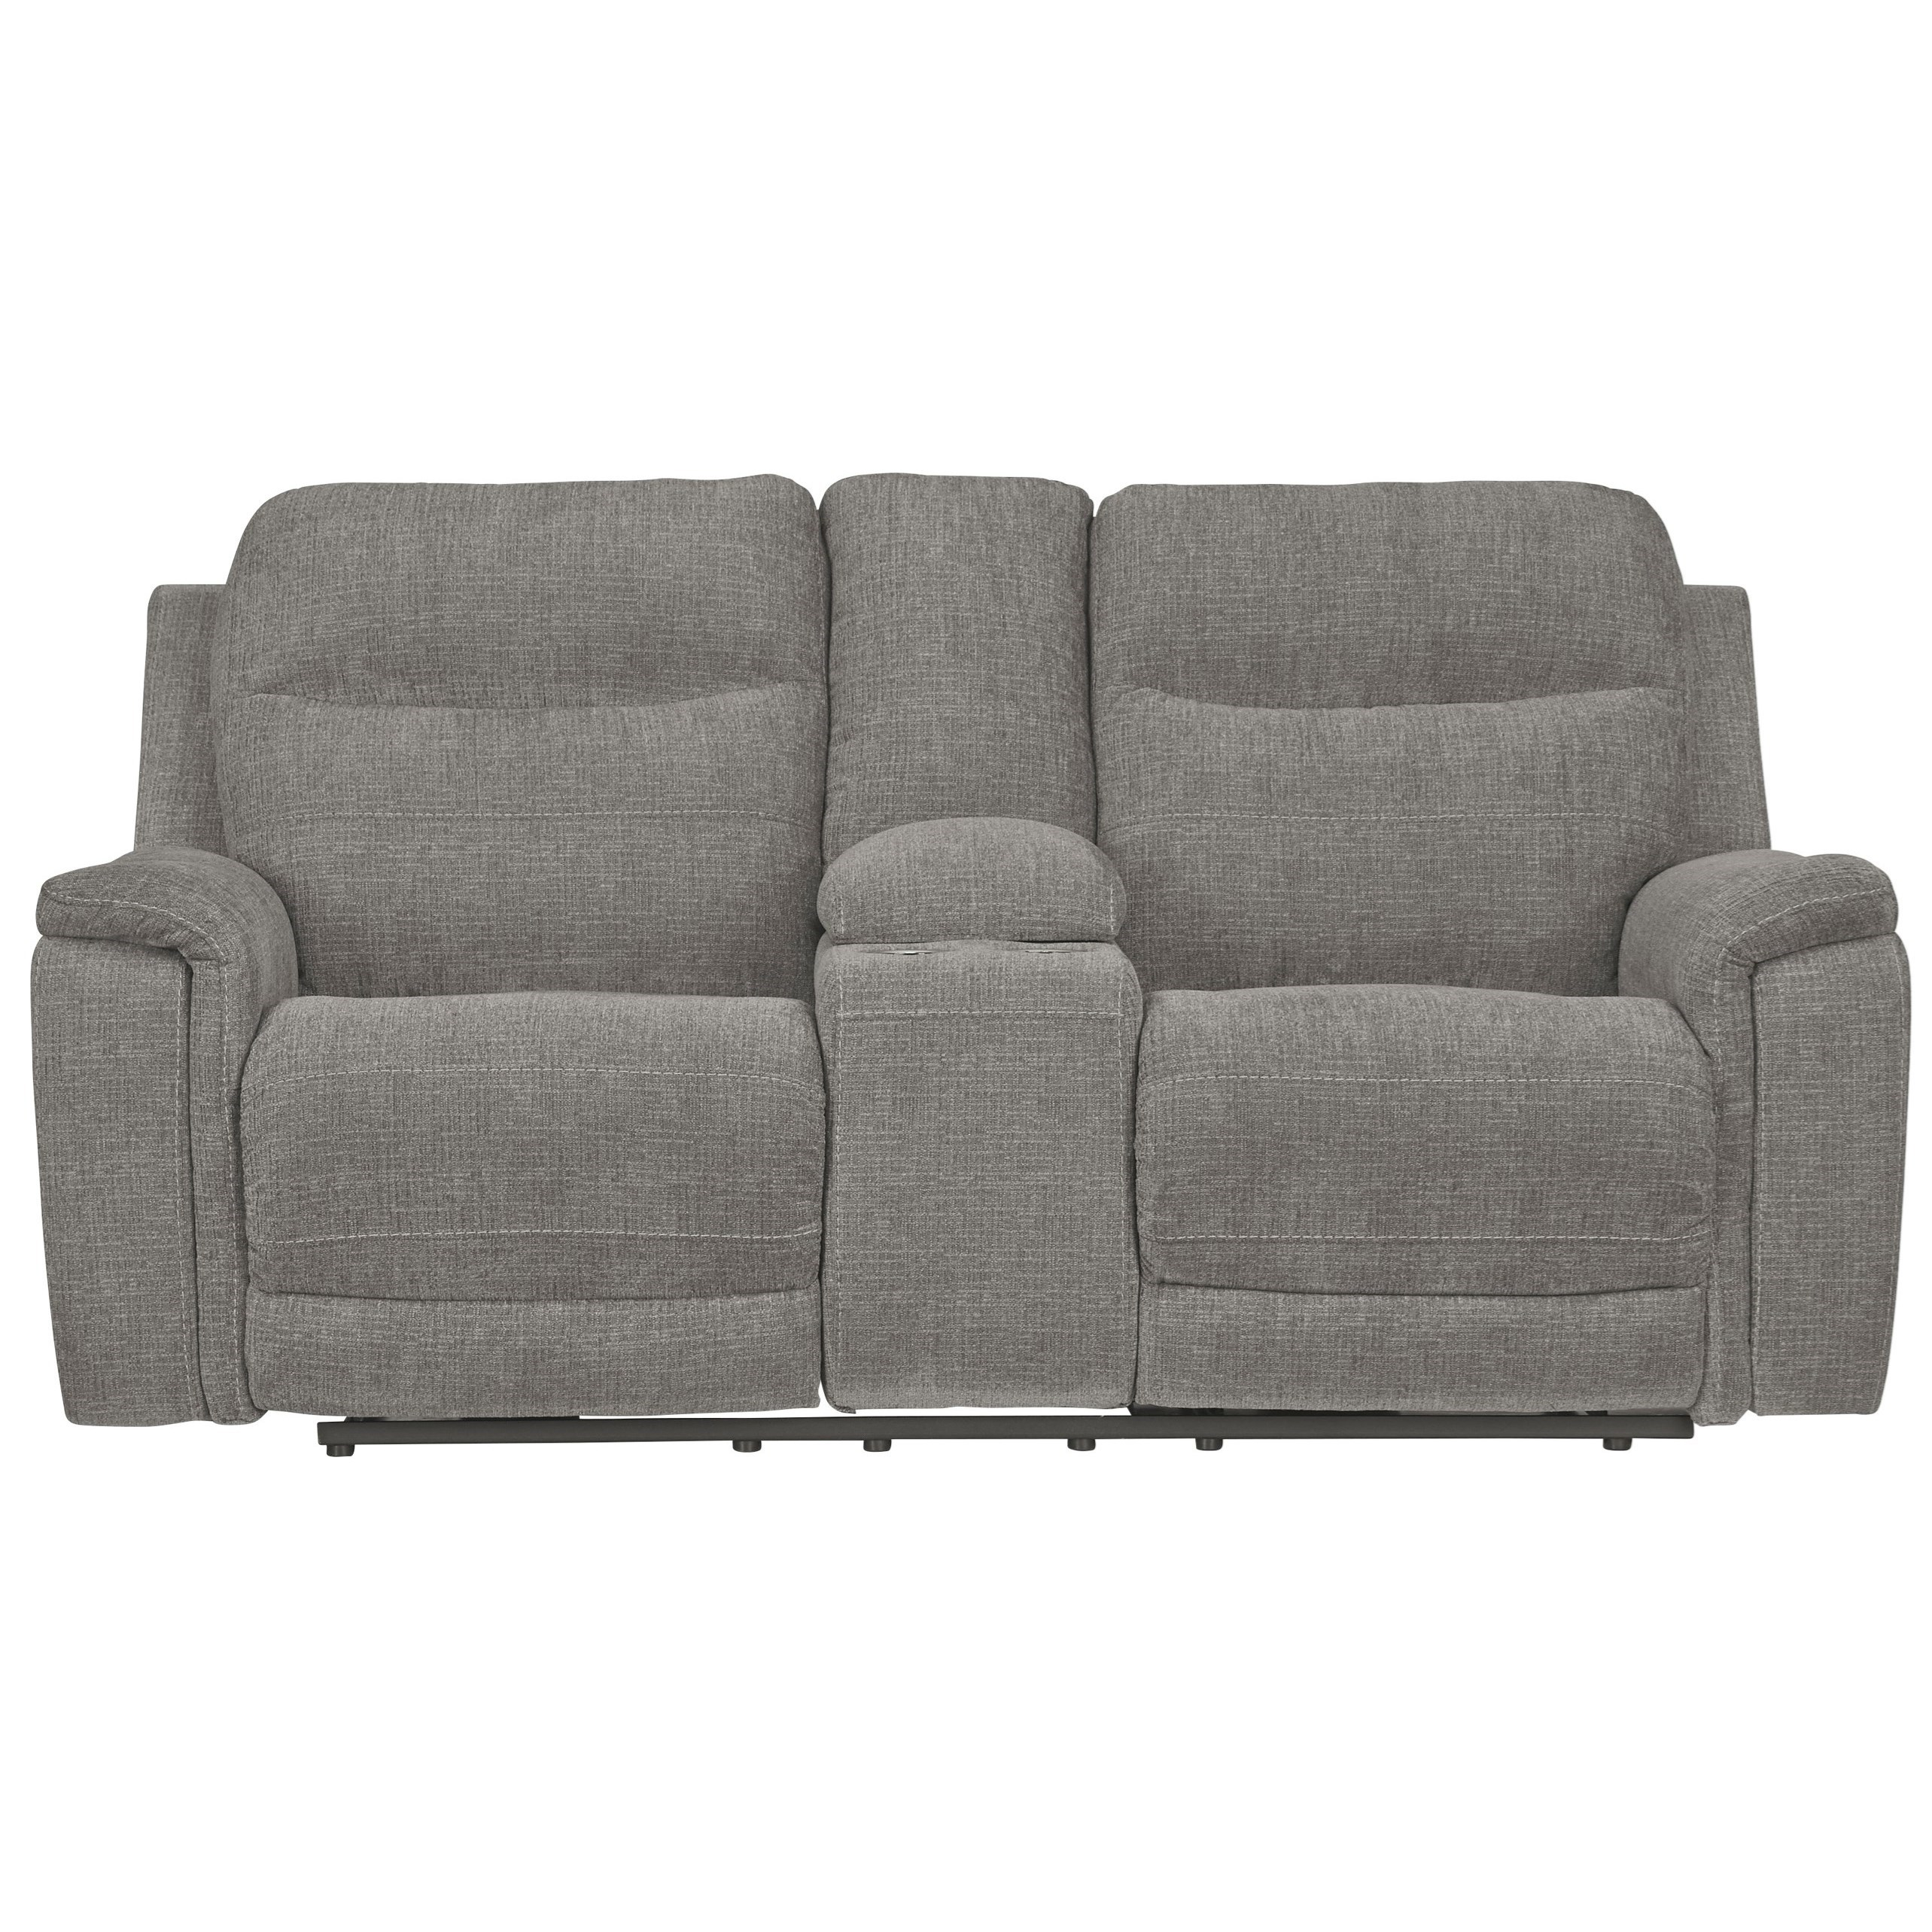 Mouttrie Pwr Rec Loveseat with Console & Adj Hdrsts by Ashley (Signature Design) at Johnny Janosik